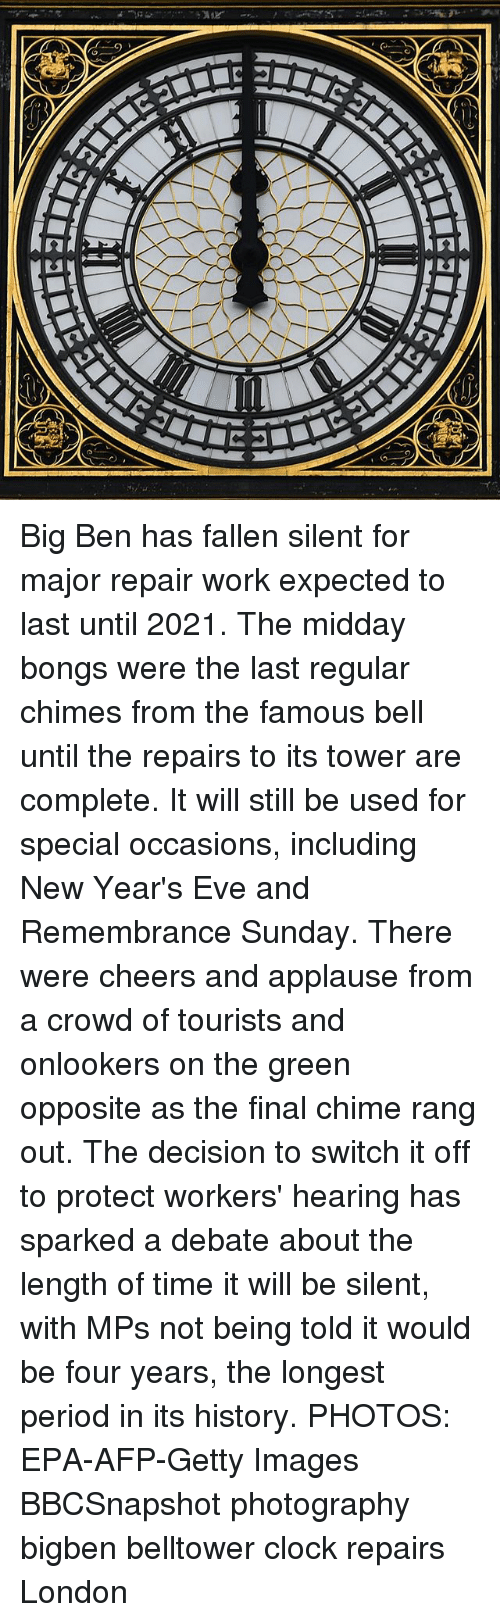 Clock, Memes, and Period: Big Ben has fallen silent for major repair work expected to last until 2021. The midday bongs were the last regular chimes from the famous bell until the repairs to its tower are complete. It will still be used for special occasions, including New Year's Eve and Remembrance Sunday. There were cheers and applause from a crowd of tourists and onlookers on the green opposite as the final chime rang out. The decision to switch it off to protect workers' hearing has sparked a debate about the length of time it will be silent, with MPs not being told it would be four years, the longest period in its history. PHOTOS: EPA-AFP-Getty Images BBCSnapshot photography bigben belltower clock repairs London